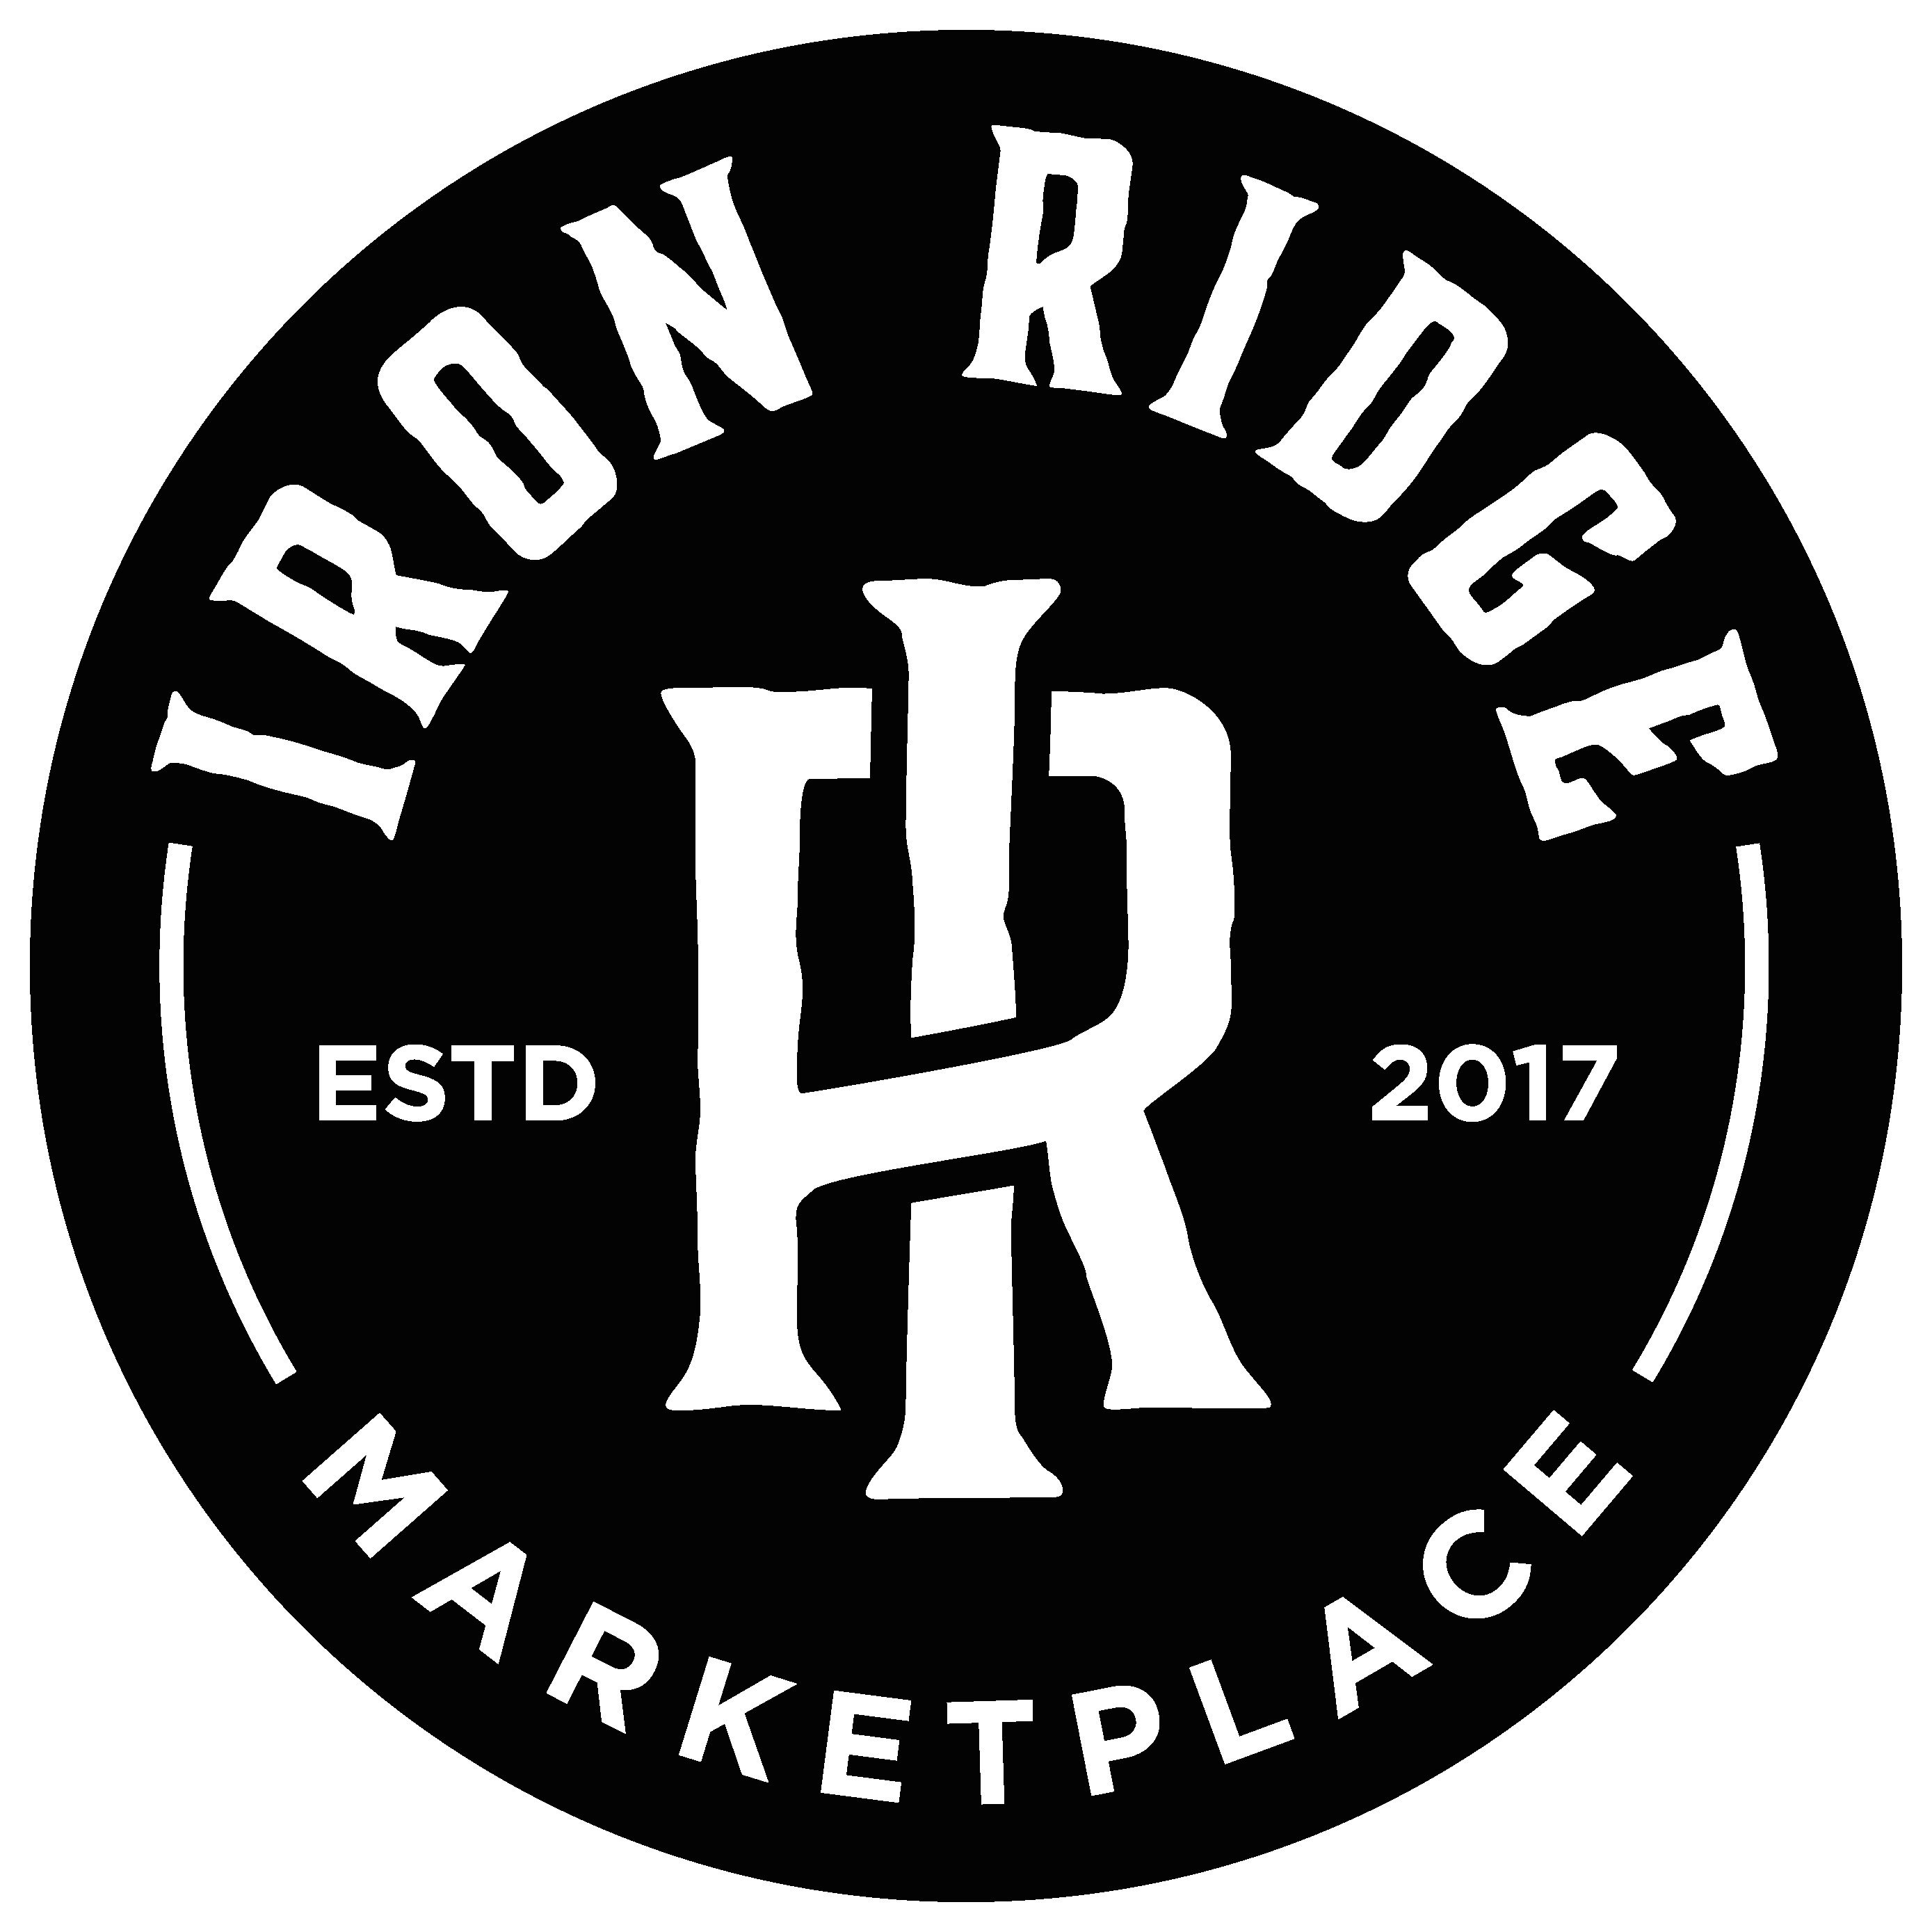 IRON RIDGE - Black logo on white backgro